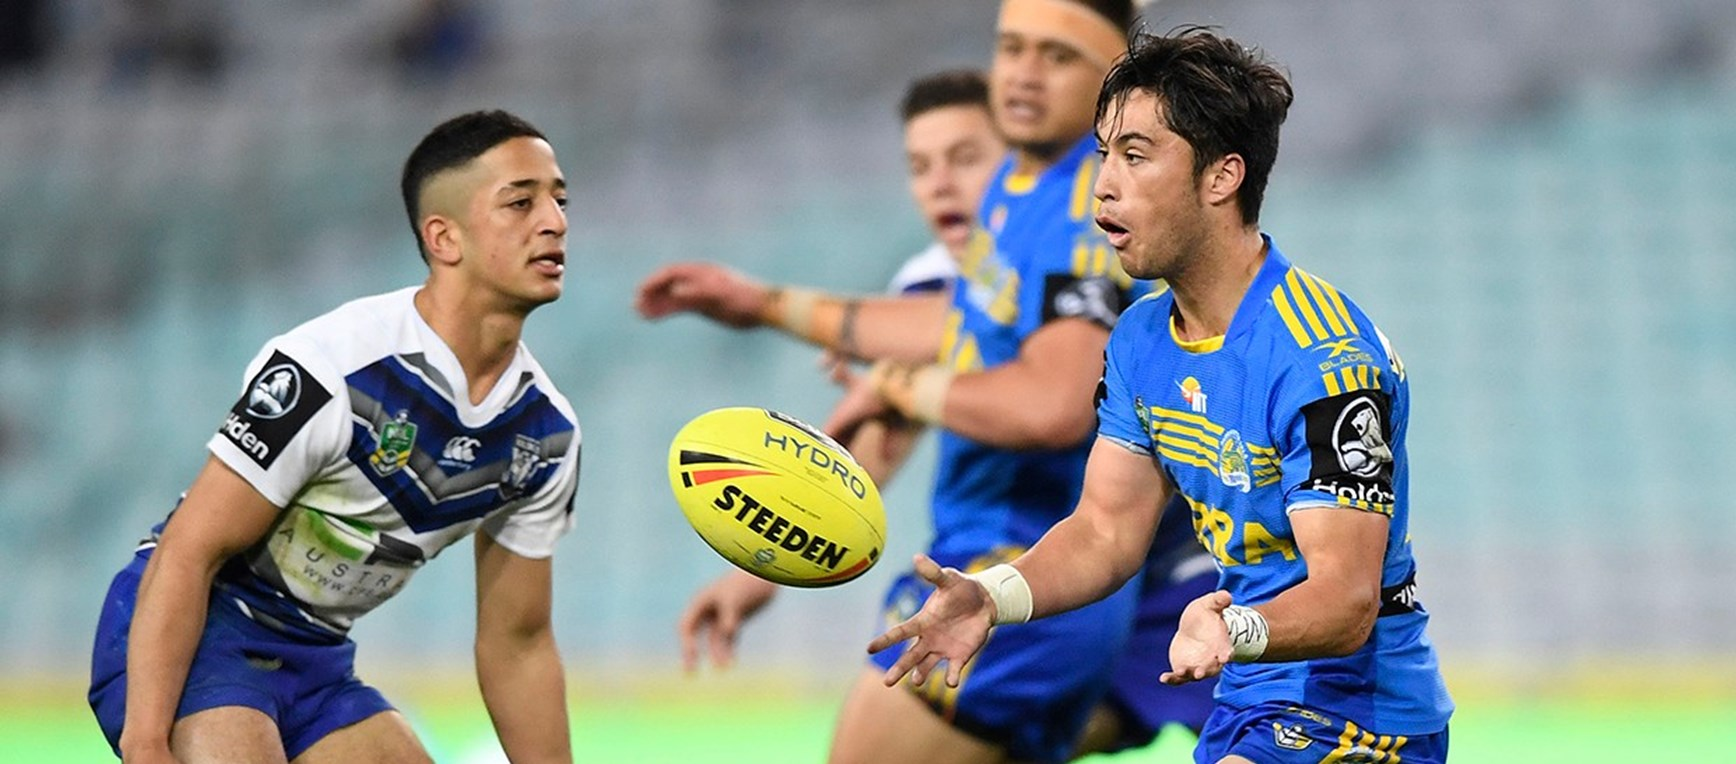 GALLERY | Eels NYC v Bulldogs, ANZ Stadium